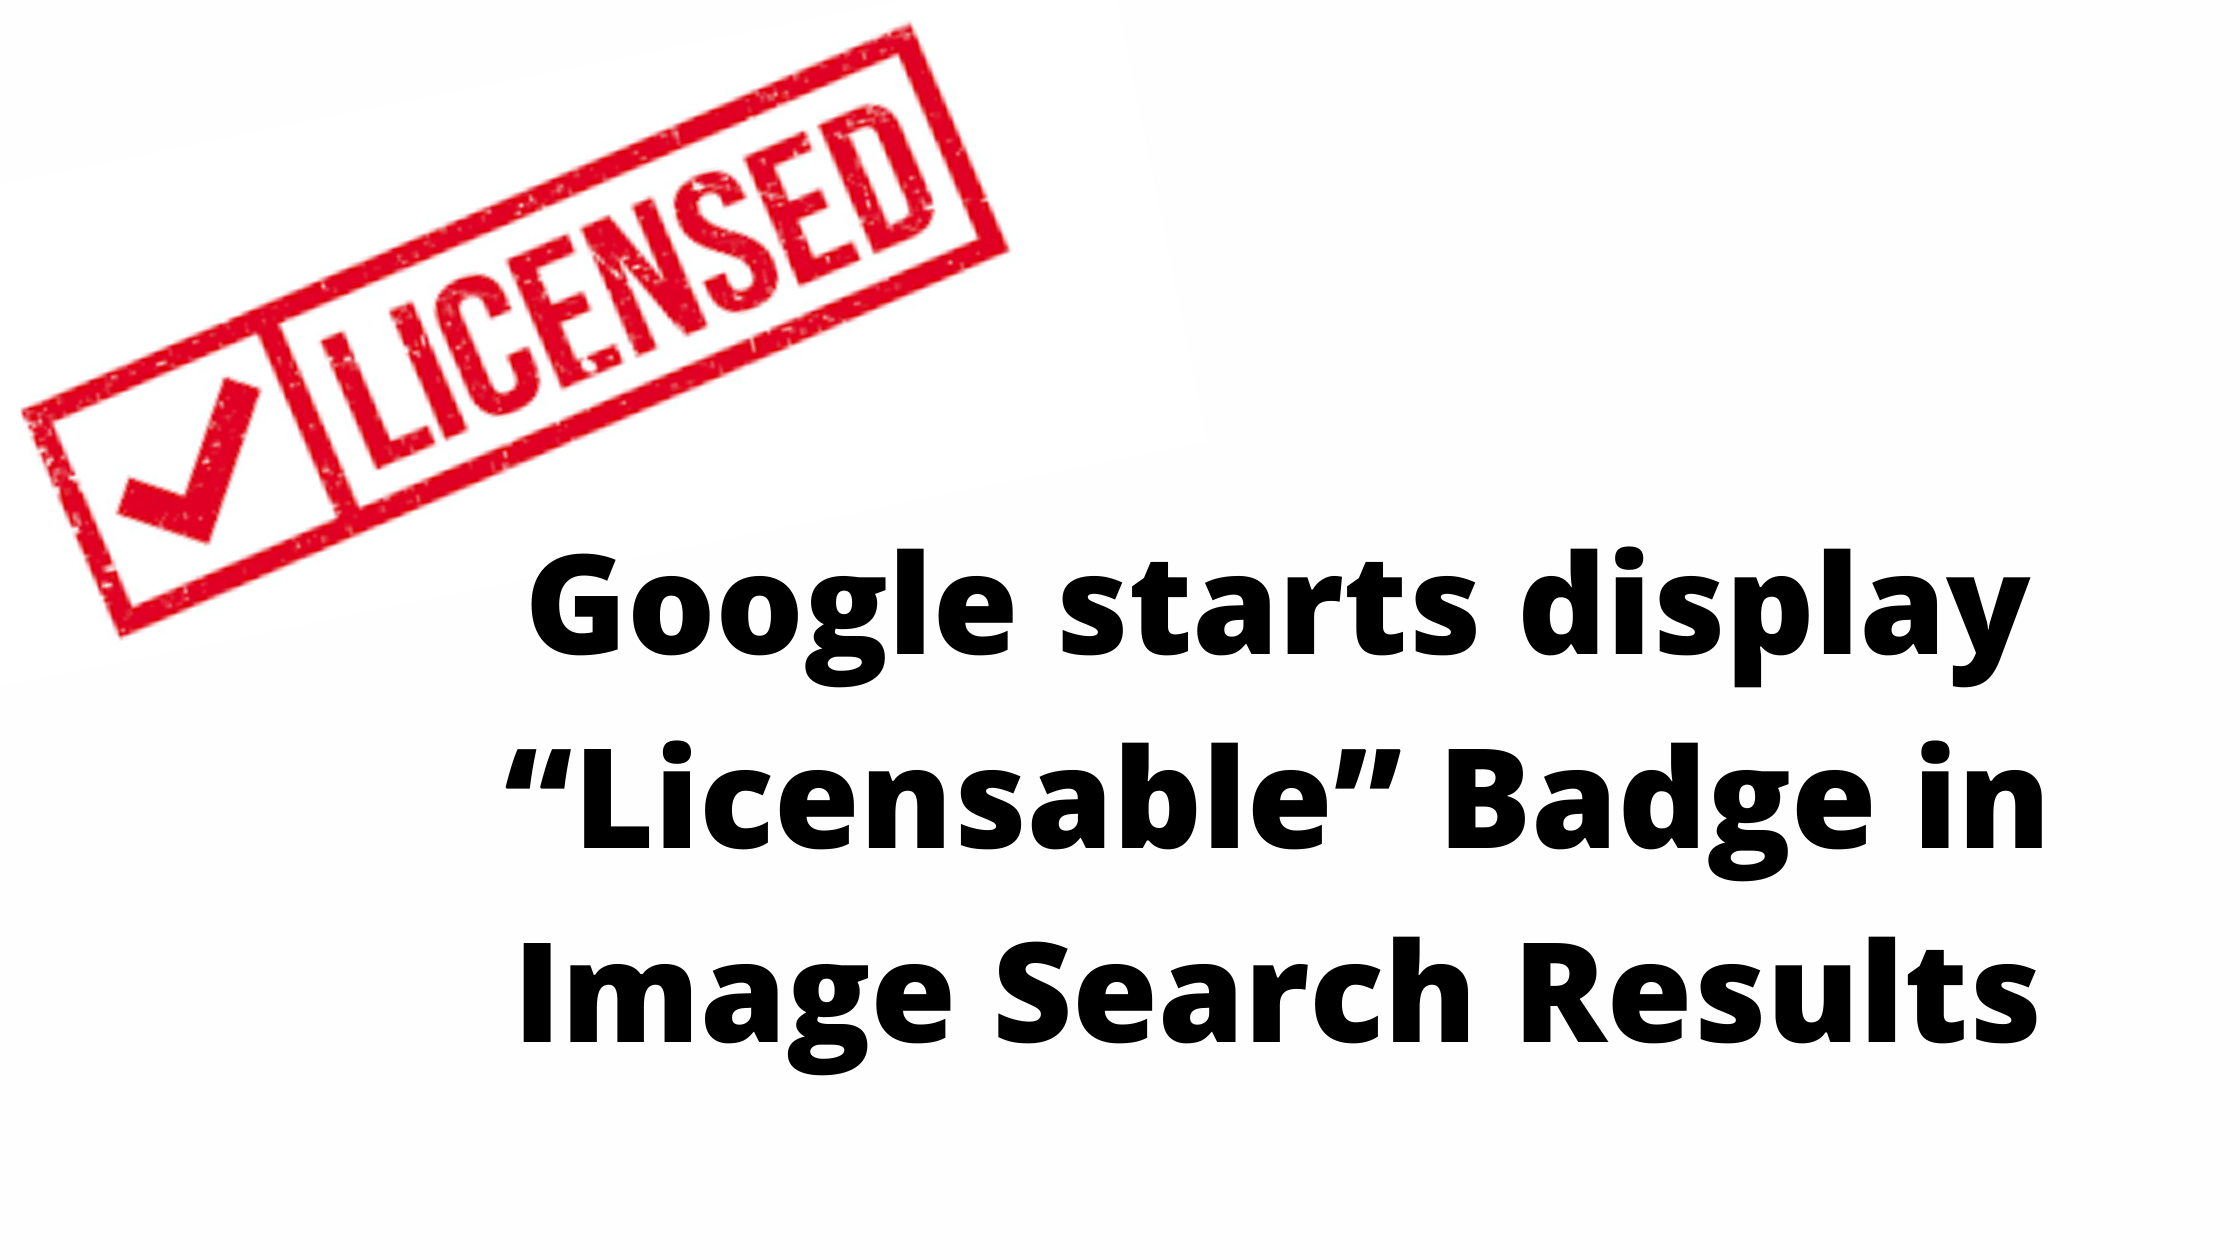 Licensable Badge in Image Search Results